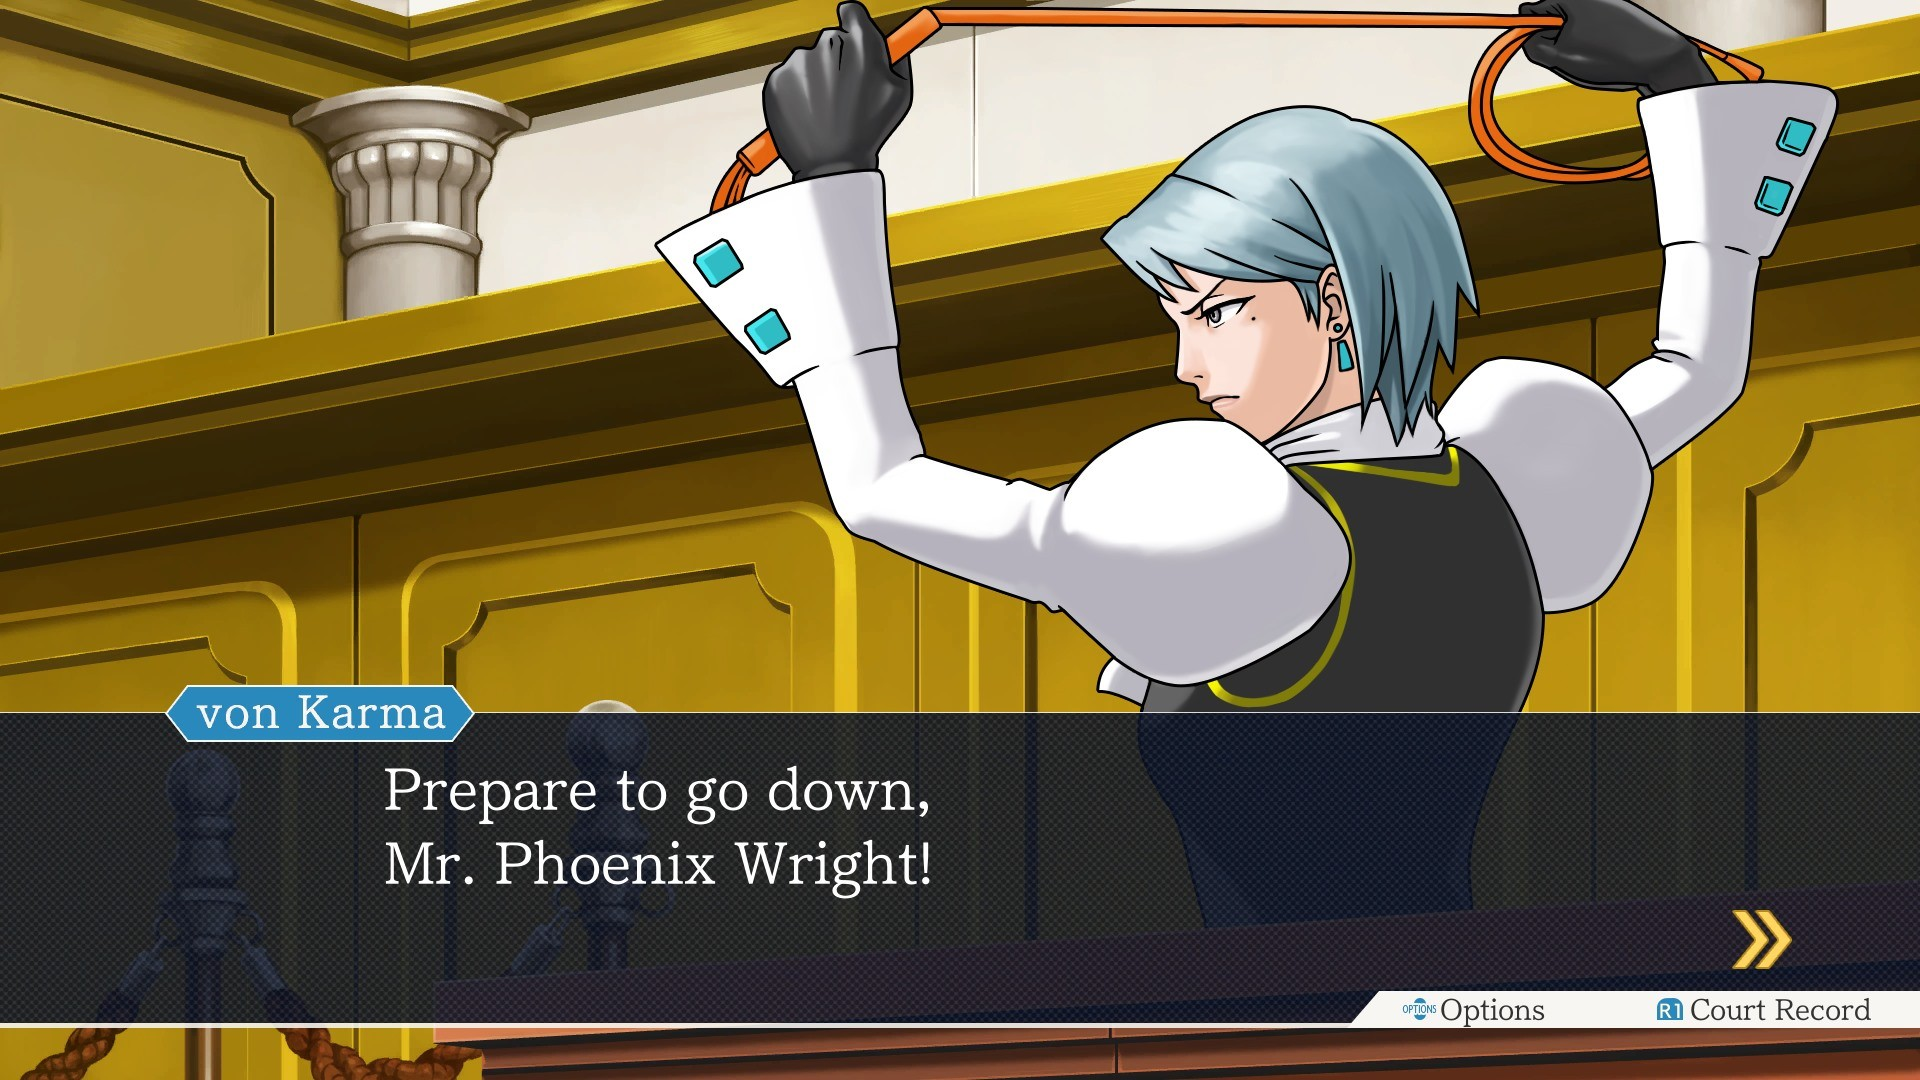 47490778302 372cc18a79 o - Phoenix Wright: Ace Attorney Trilogy erscheint morgen